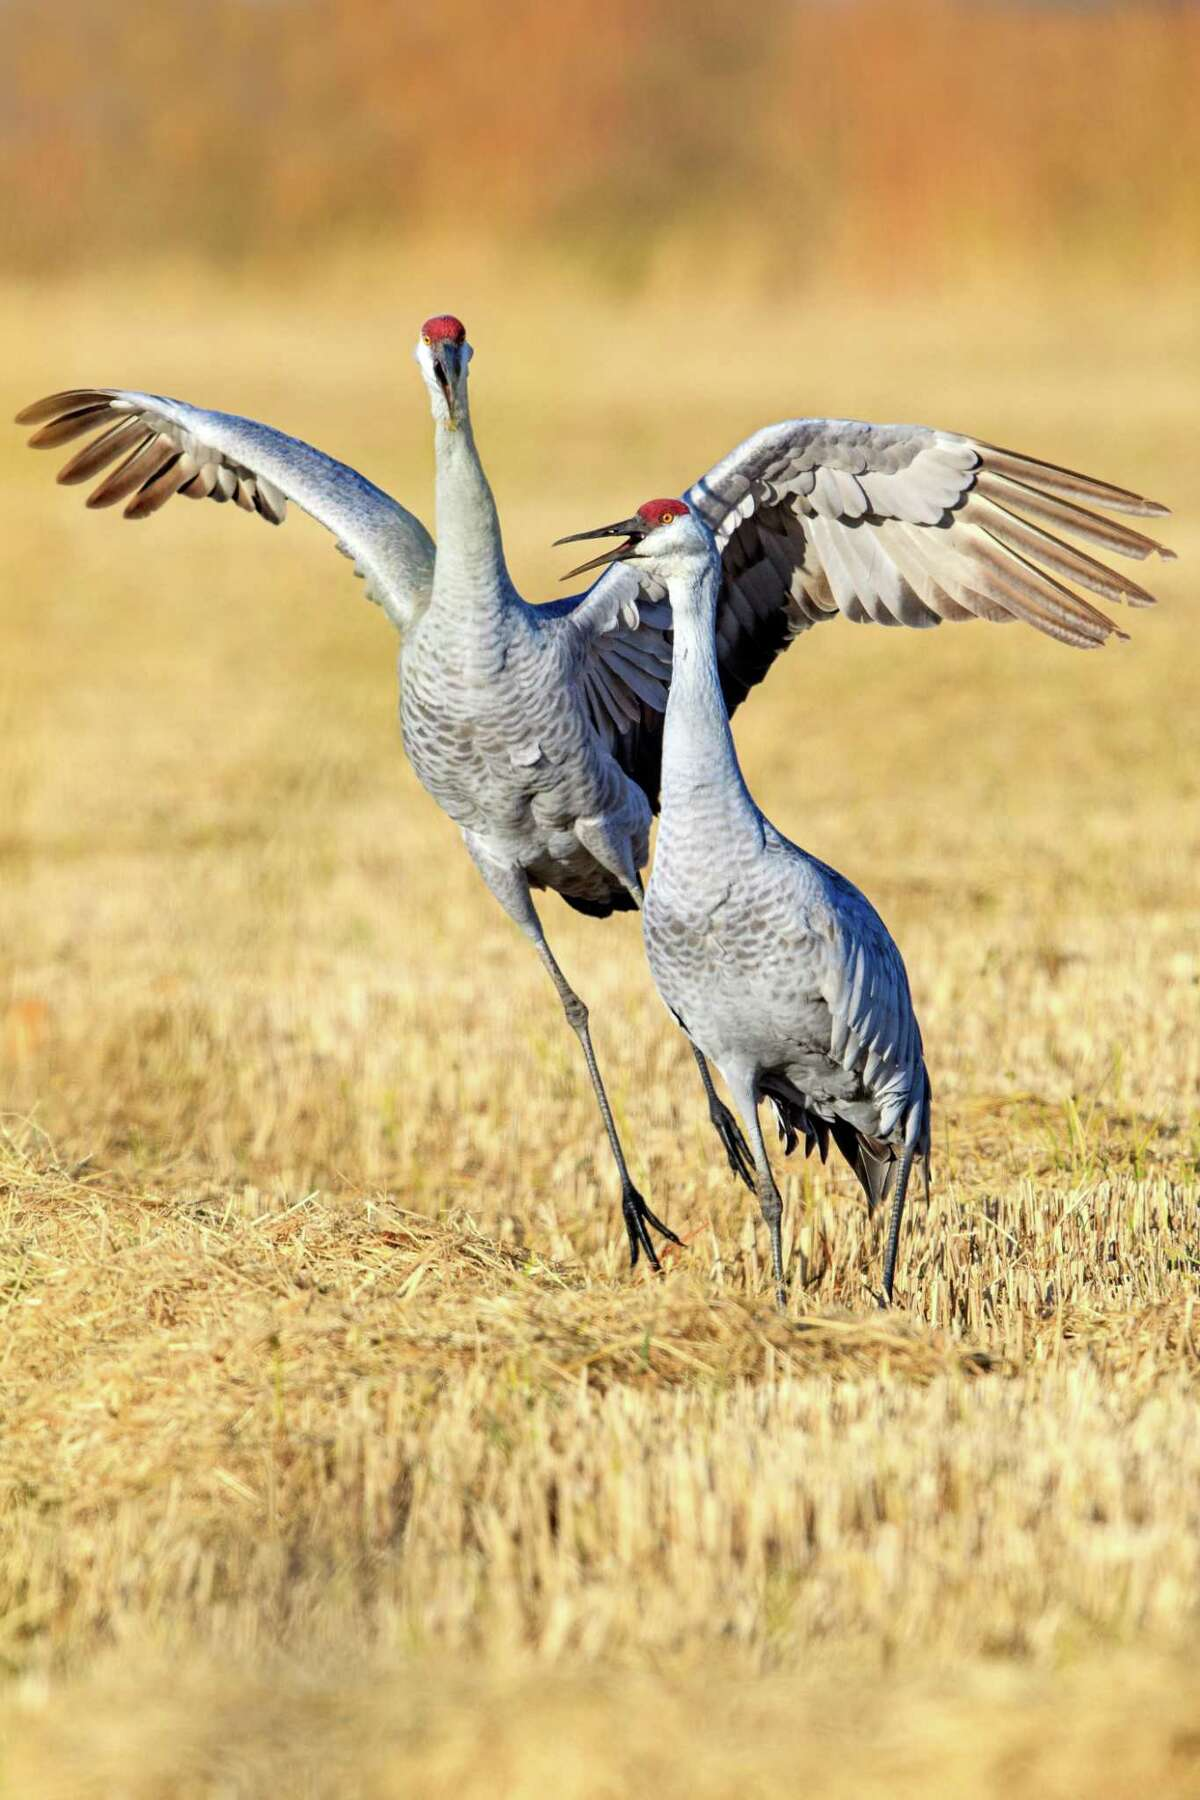 The cranes hunt in small family groups during the day.